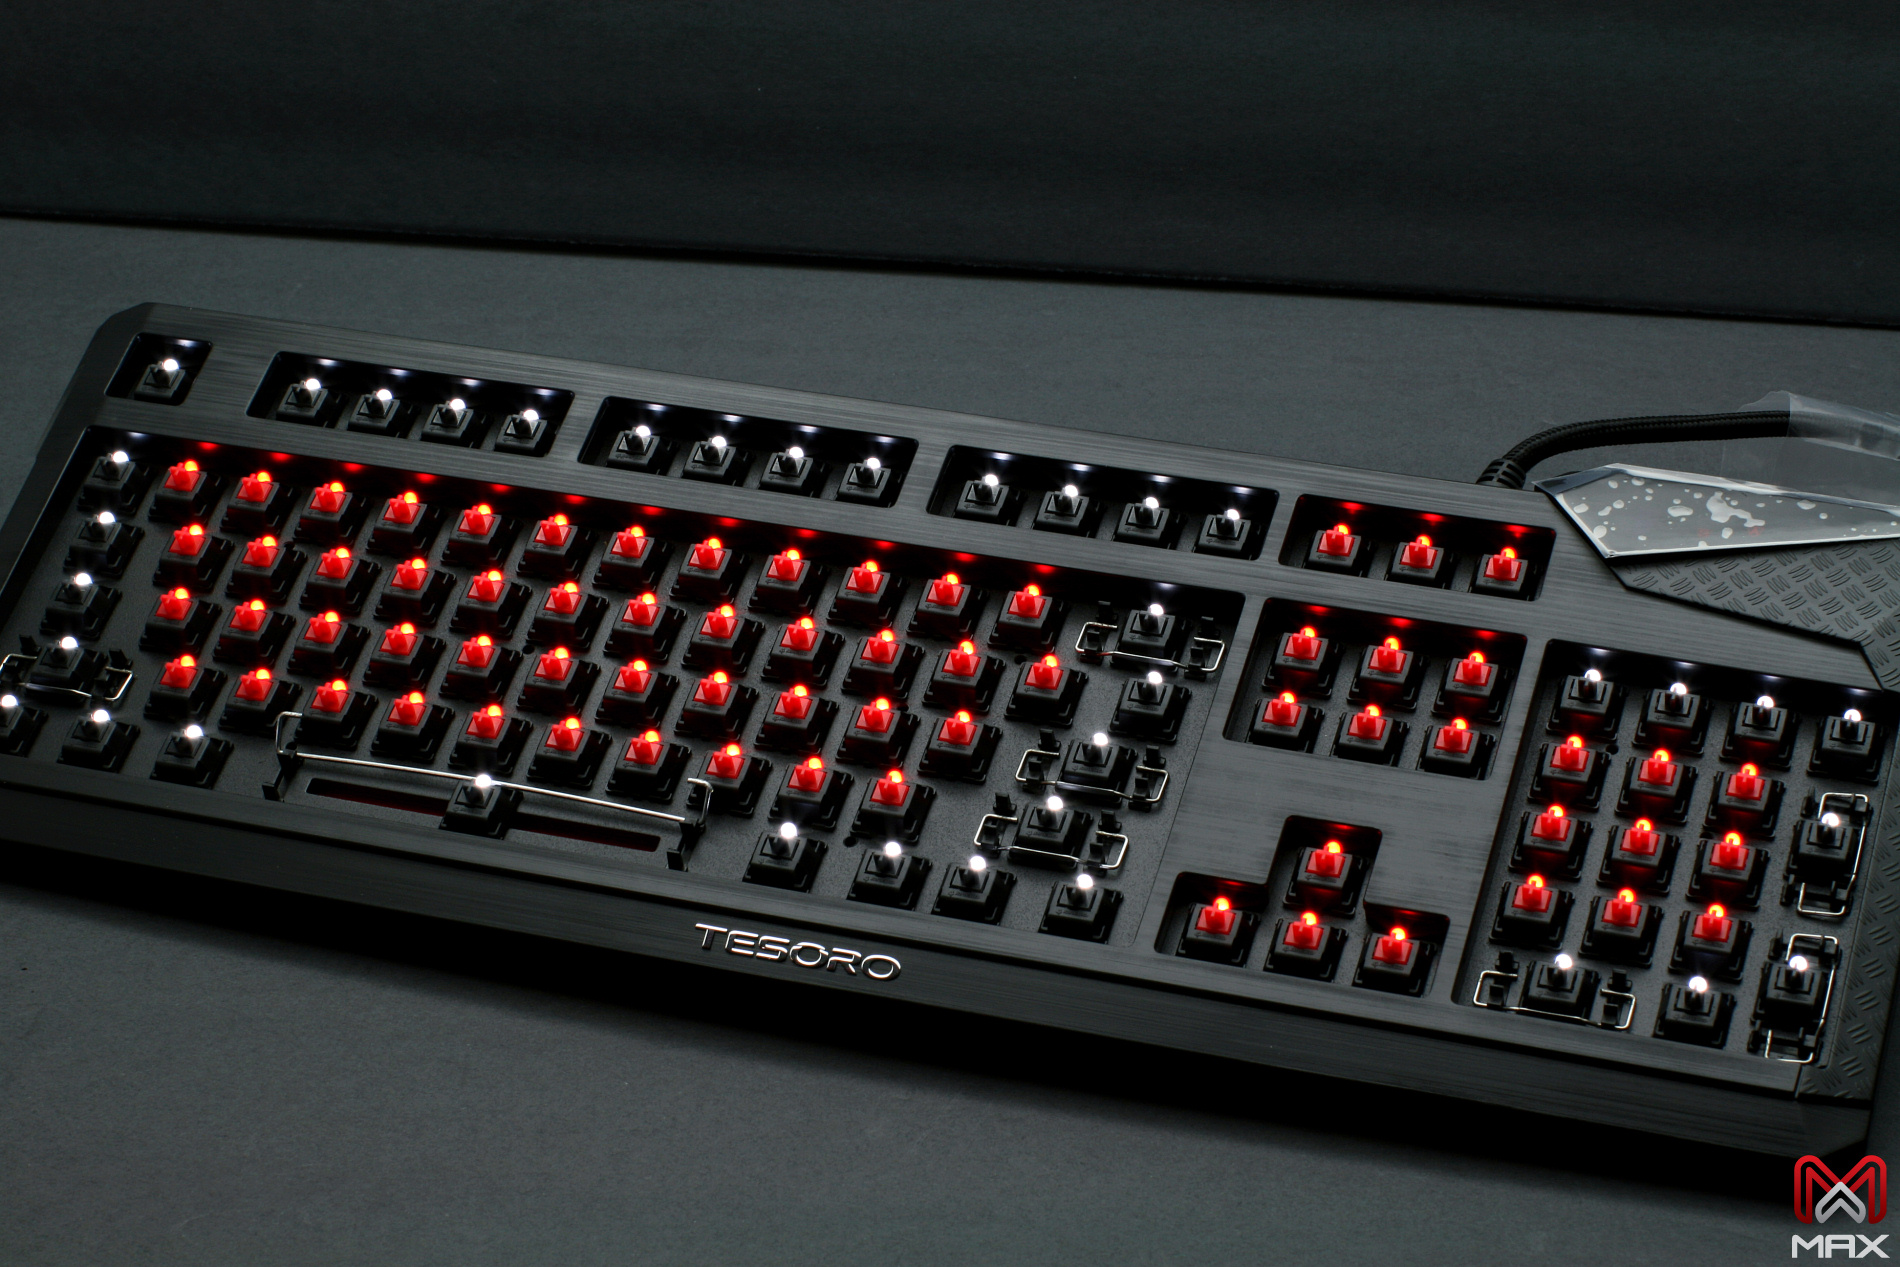 Max Keyboard Tesoro Durandal eSport Edition Backlit Mechanical Keyboard